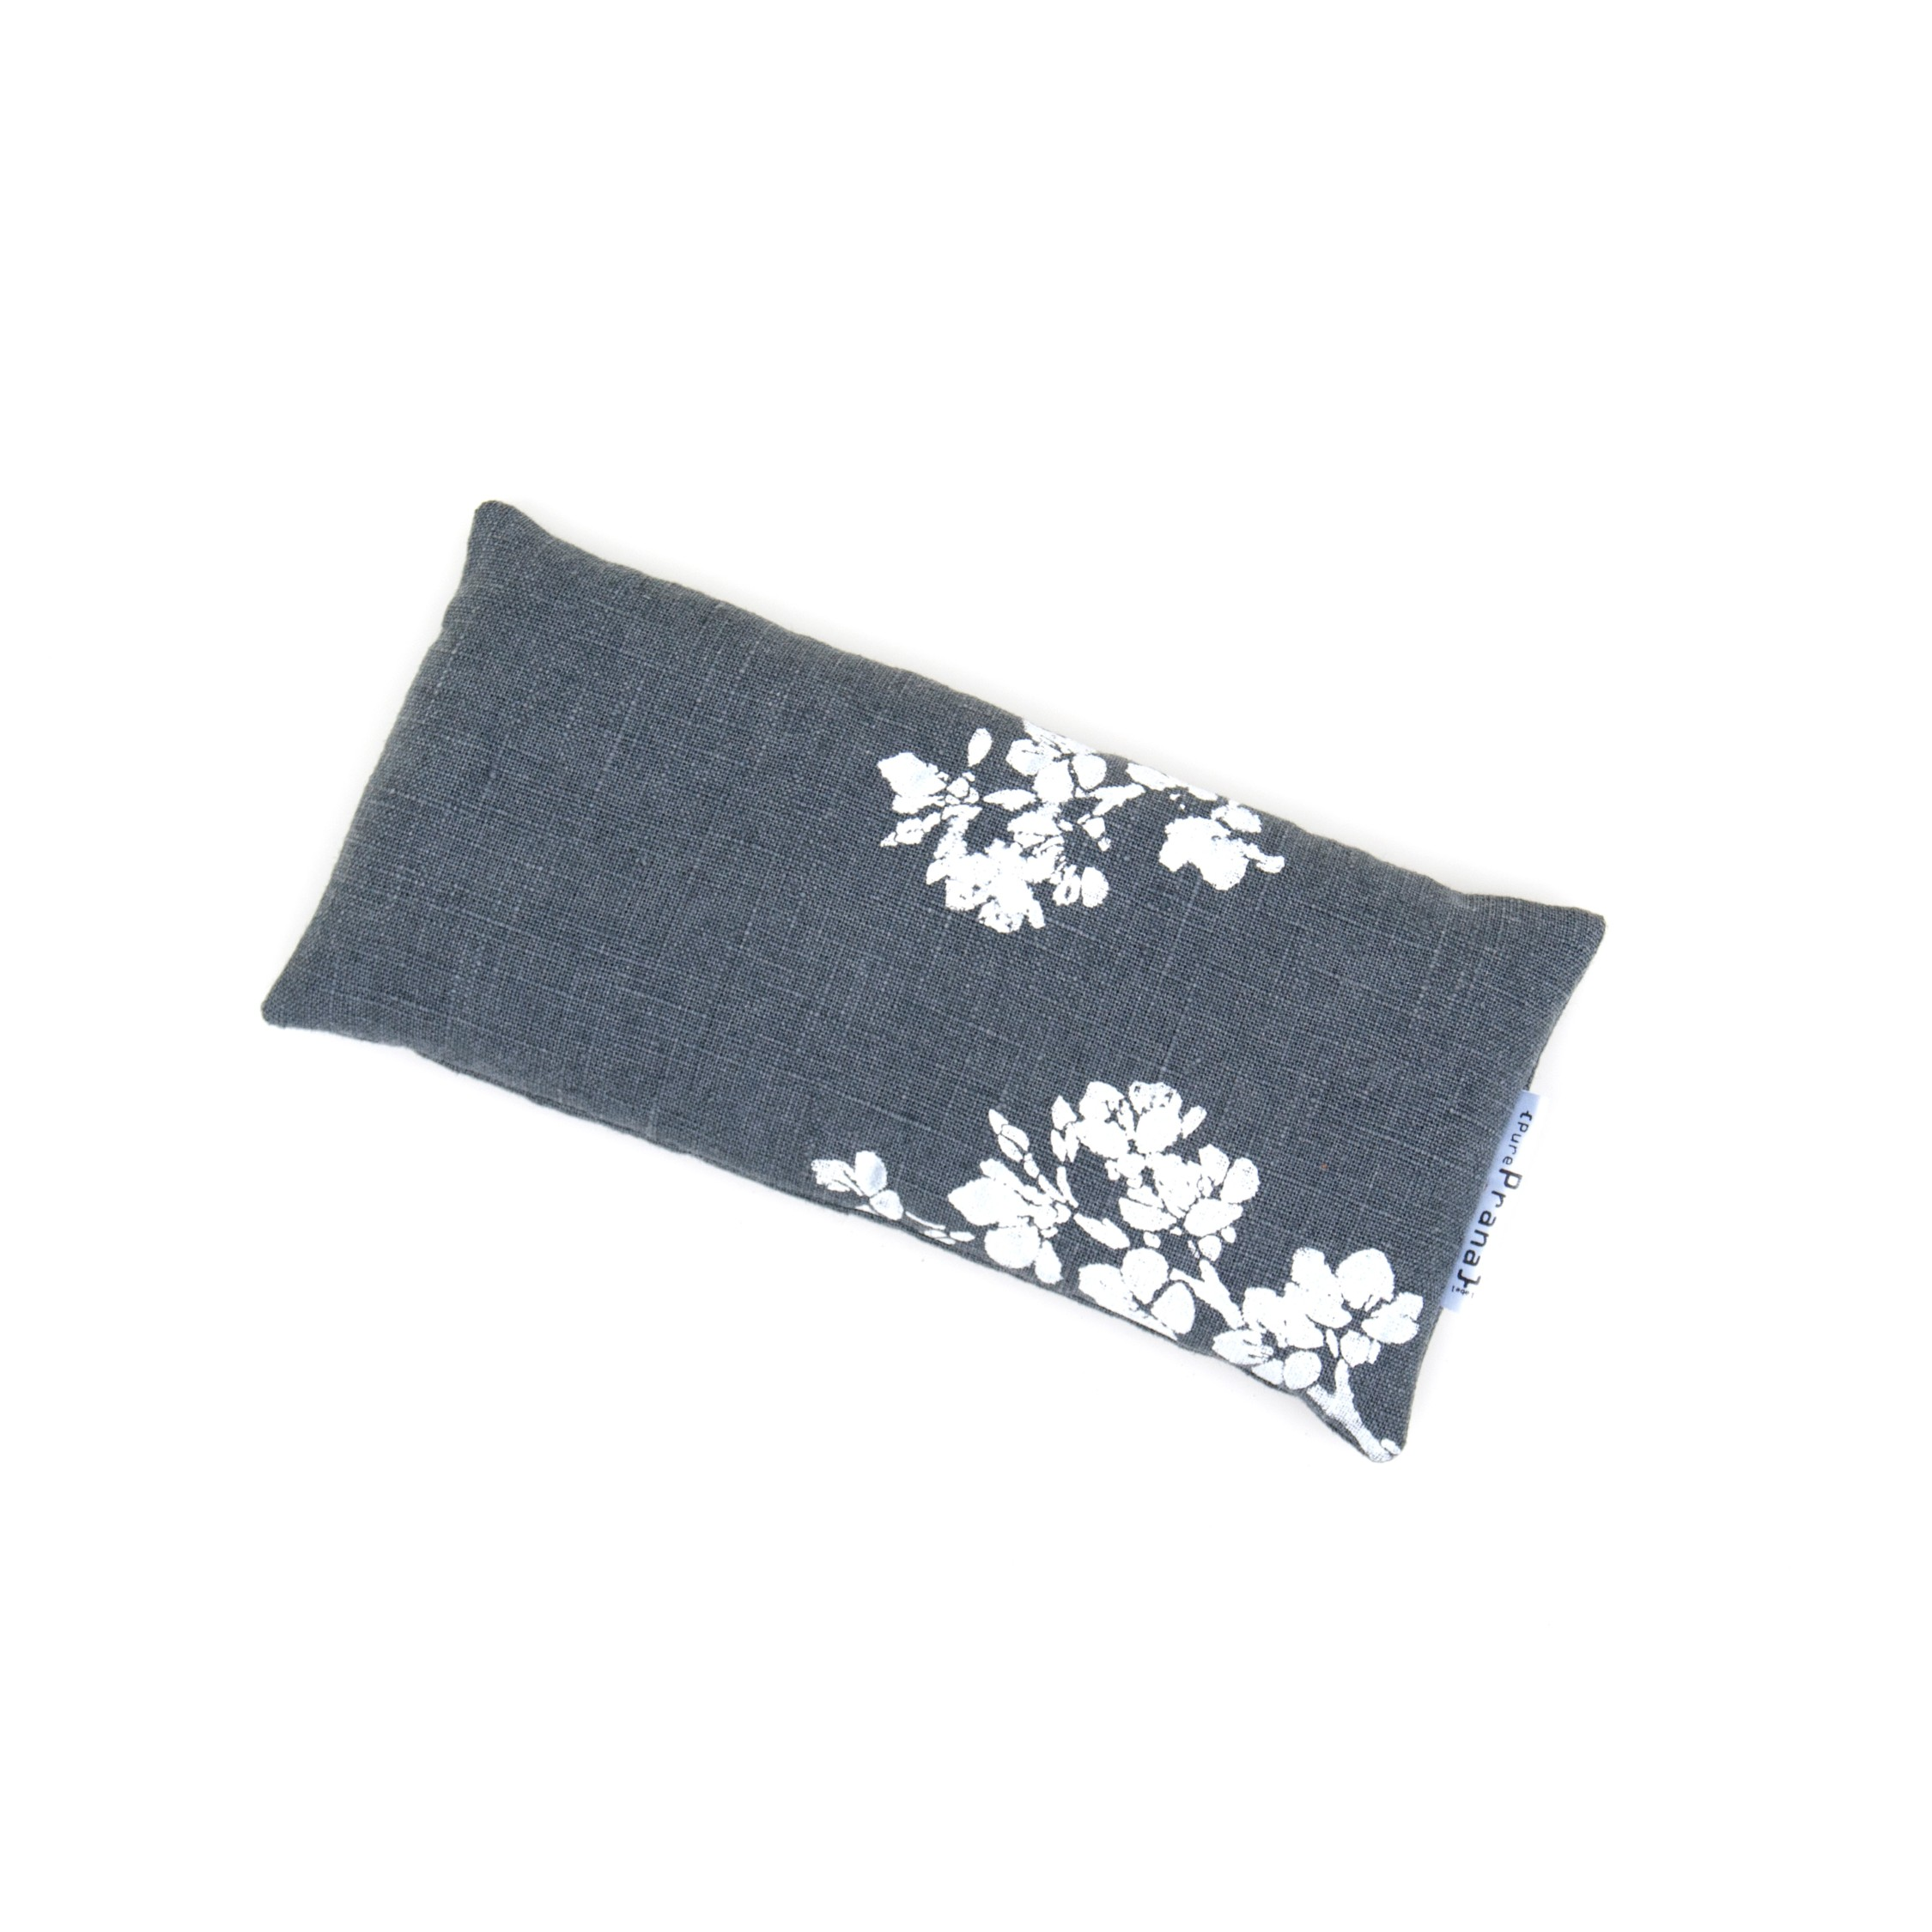 Top view of the lavender eye pillow Cherry Blossom by Pure Prana Label